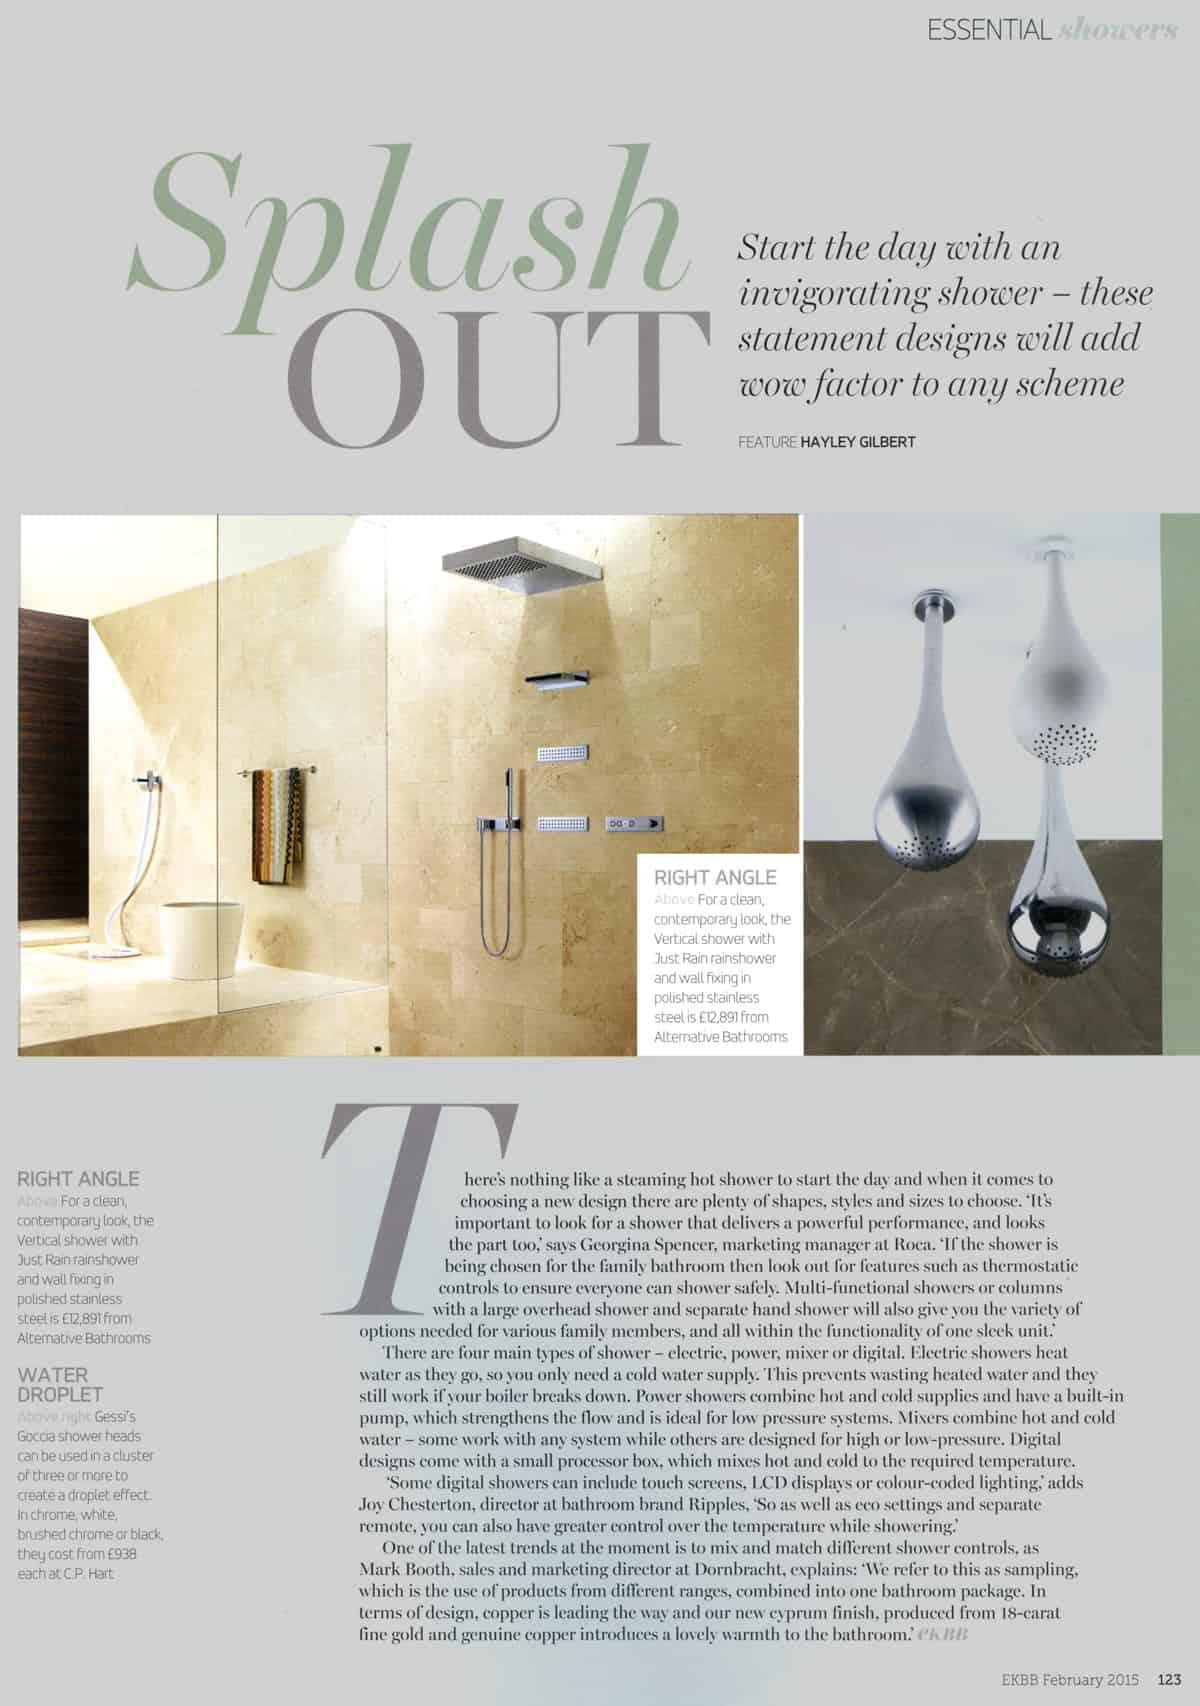 Kitchens Bedrooms   Bathrooms February 2015. Essential Kitchen Bathroom Bedroom   Alternative Bathrooms London